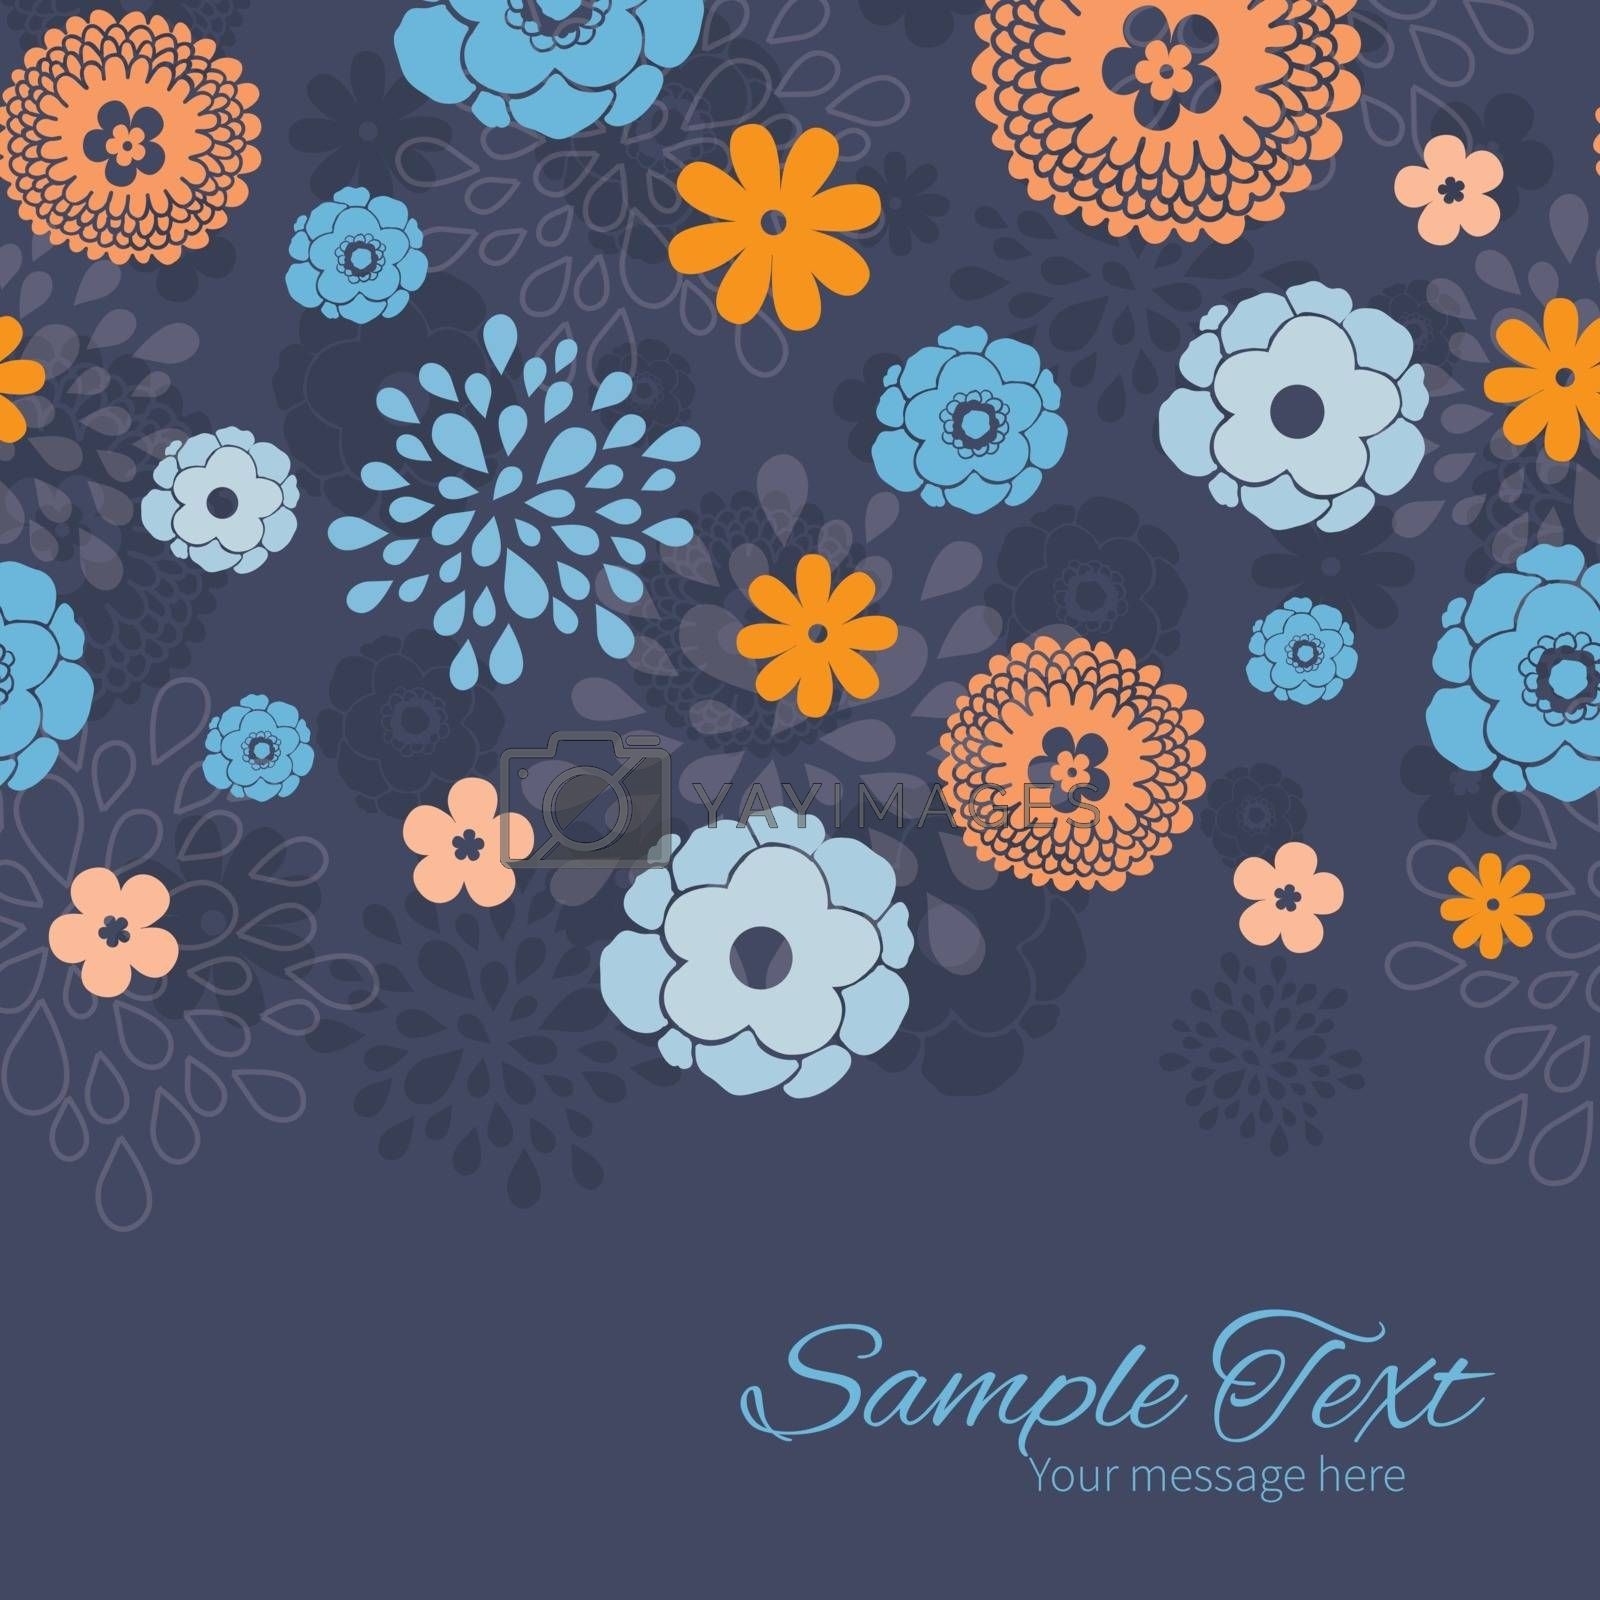 Vector golden and blue night flowers horizontal border card template graphic design